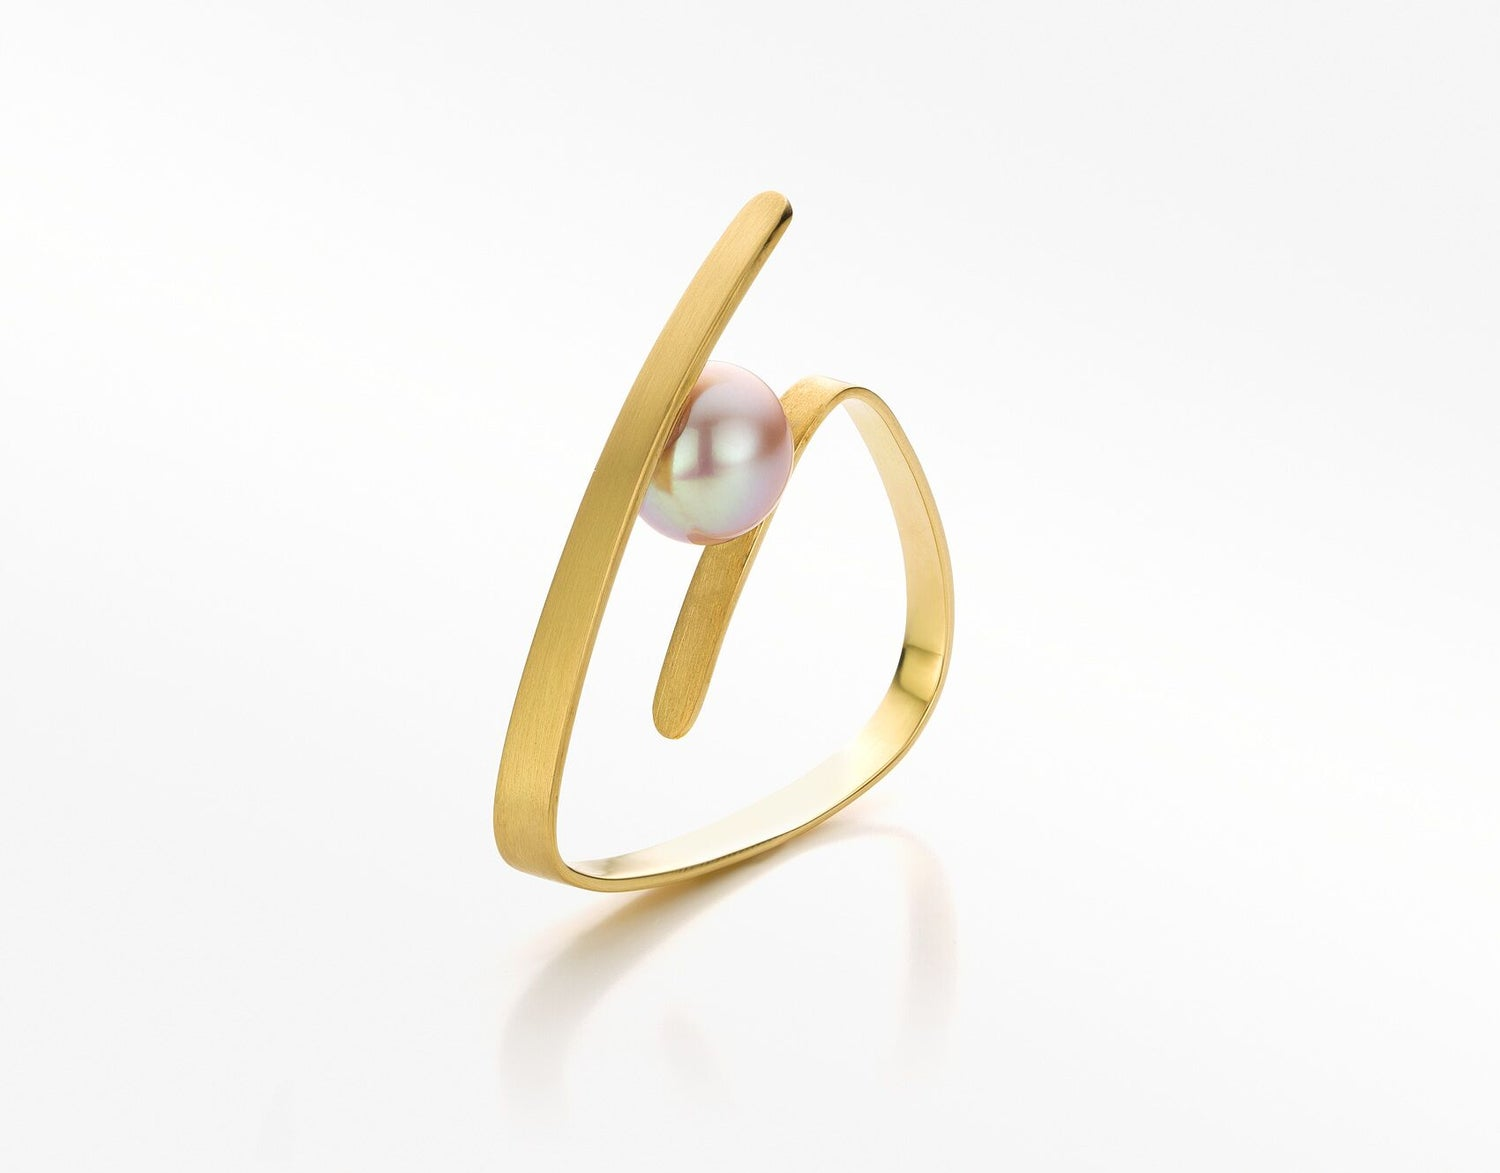 Image of 'Pure Line' ring gold pink pearl - ring in geelgoud met roze parel